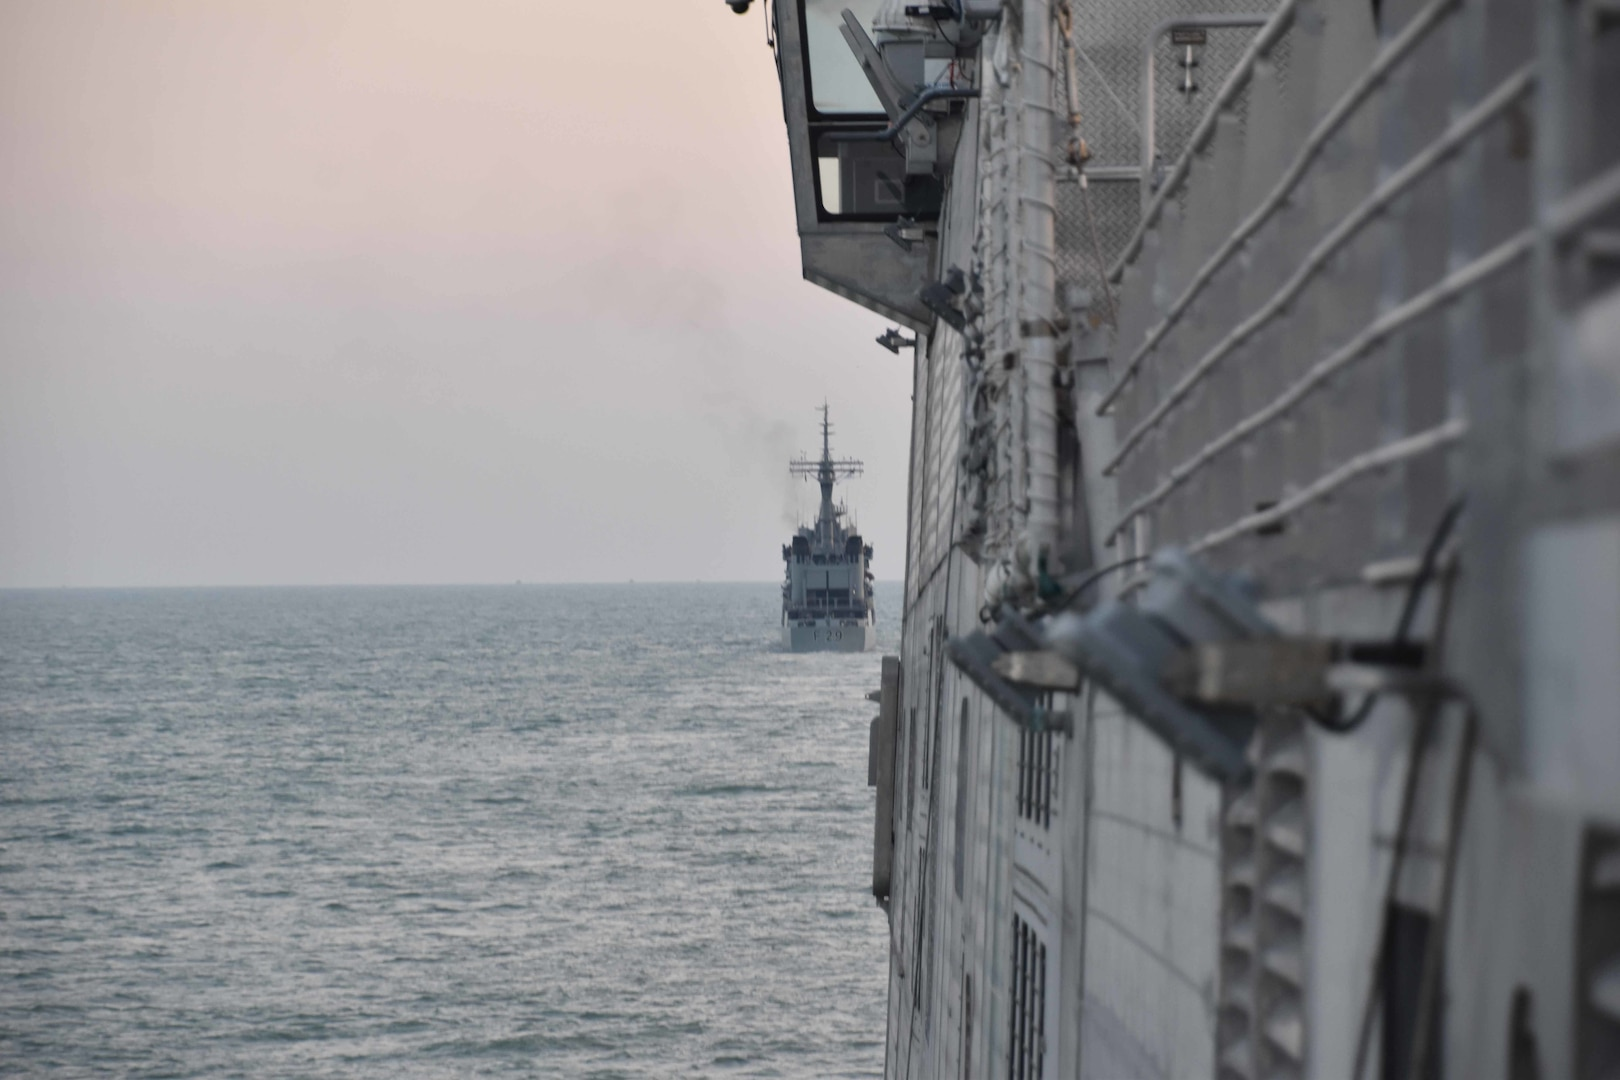 Ships from the Bangladesh Navy meet with USNS Millinocket (T-EPF 3) in the Bay of Bengal as part of the sea phase of Cooperation Afloat Readiness and Training (CARAT) Bangladesh 2020. This year marks the 26th iteration of CARAT, a multinational exercise designed to enhance U.S. and partner navies' abilities to operate together in response to traditional and non-traditional maritime security challenges in the Indo-Pacific region.